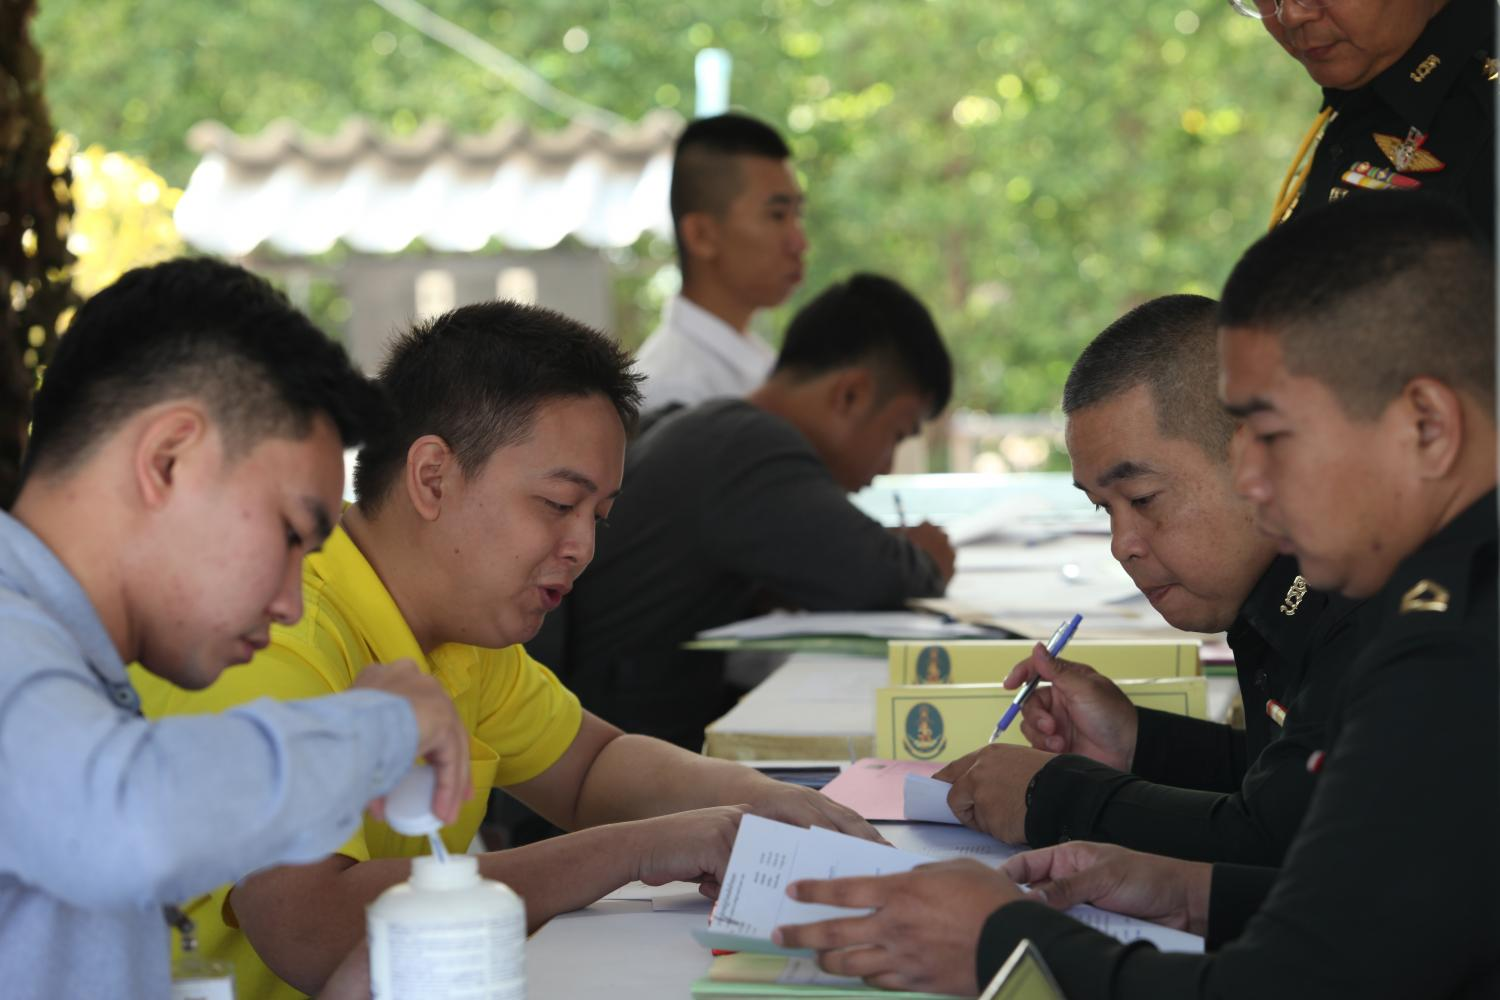 Reservists fill out application forms to work as temporary officers in the army. (Photo by Apichart Jinakul)